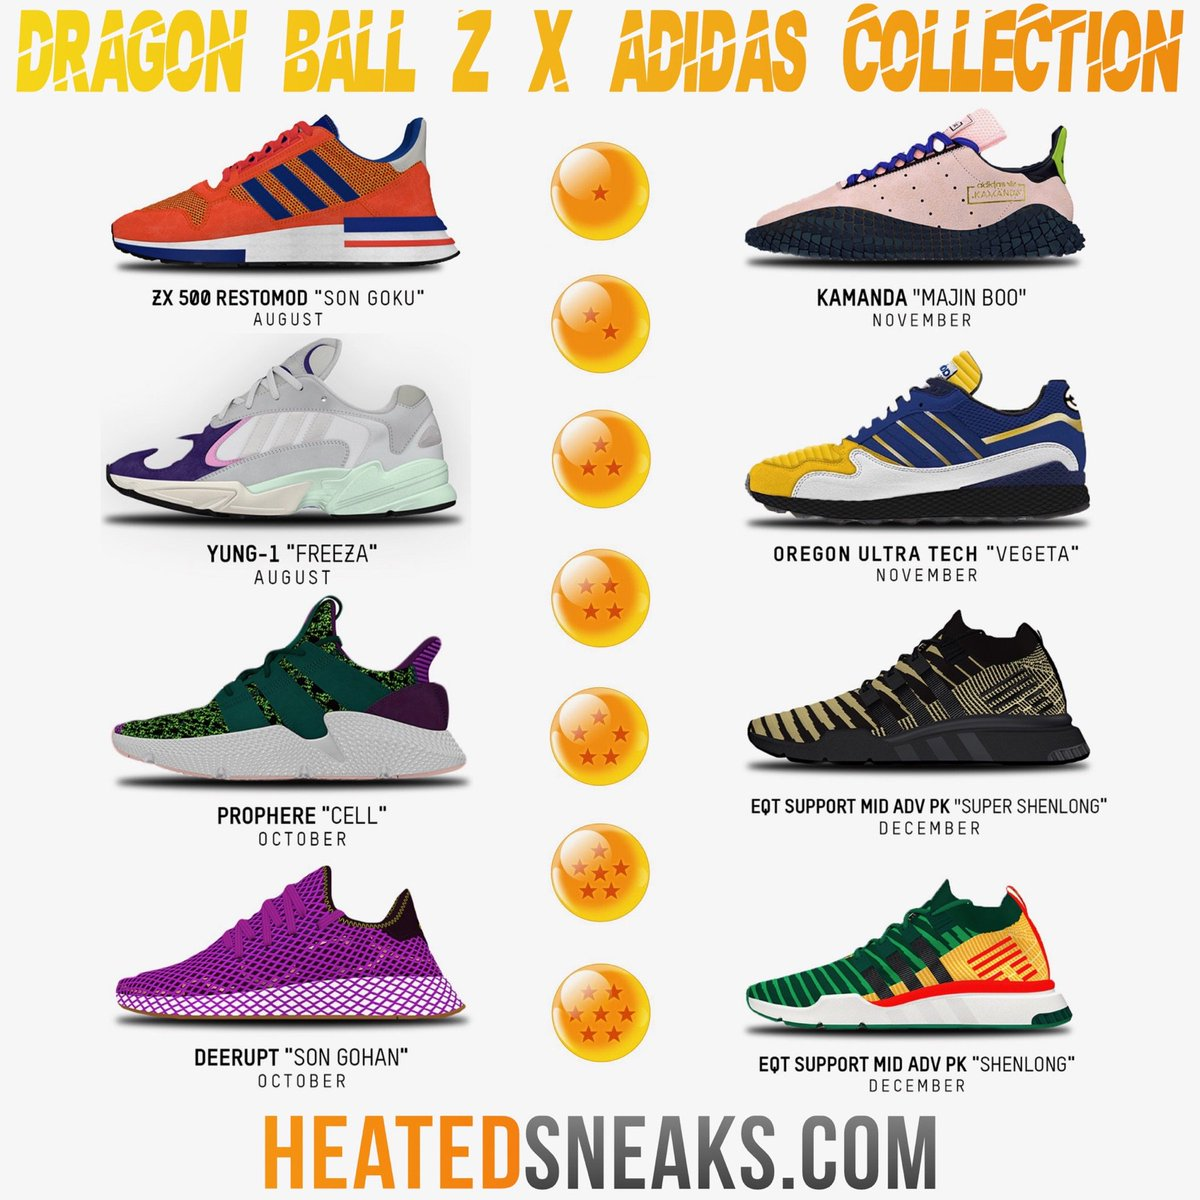 adidas dragon ball